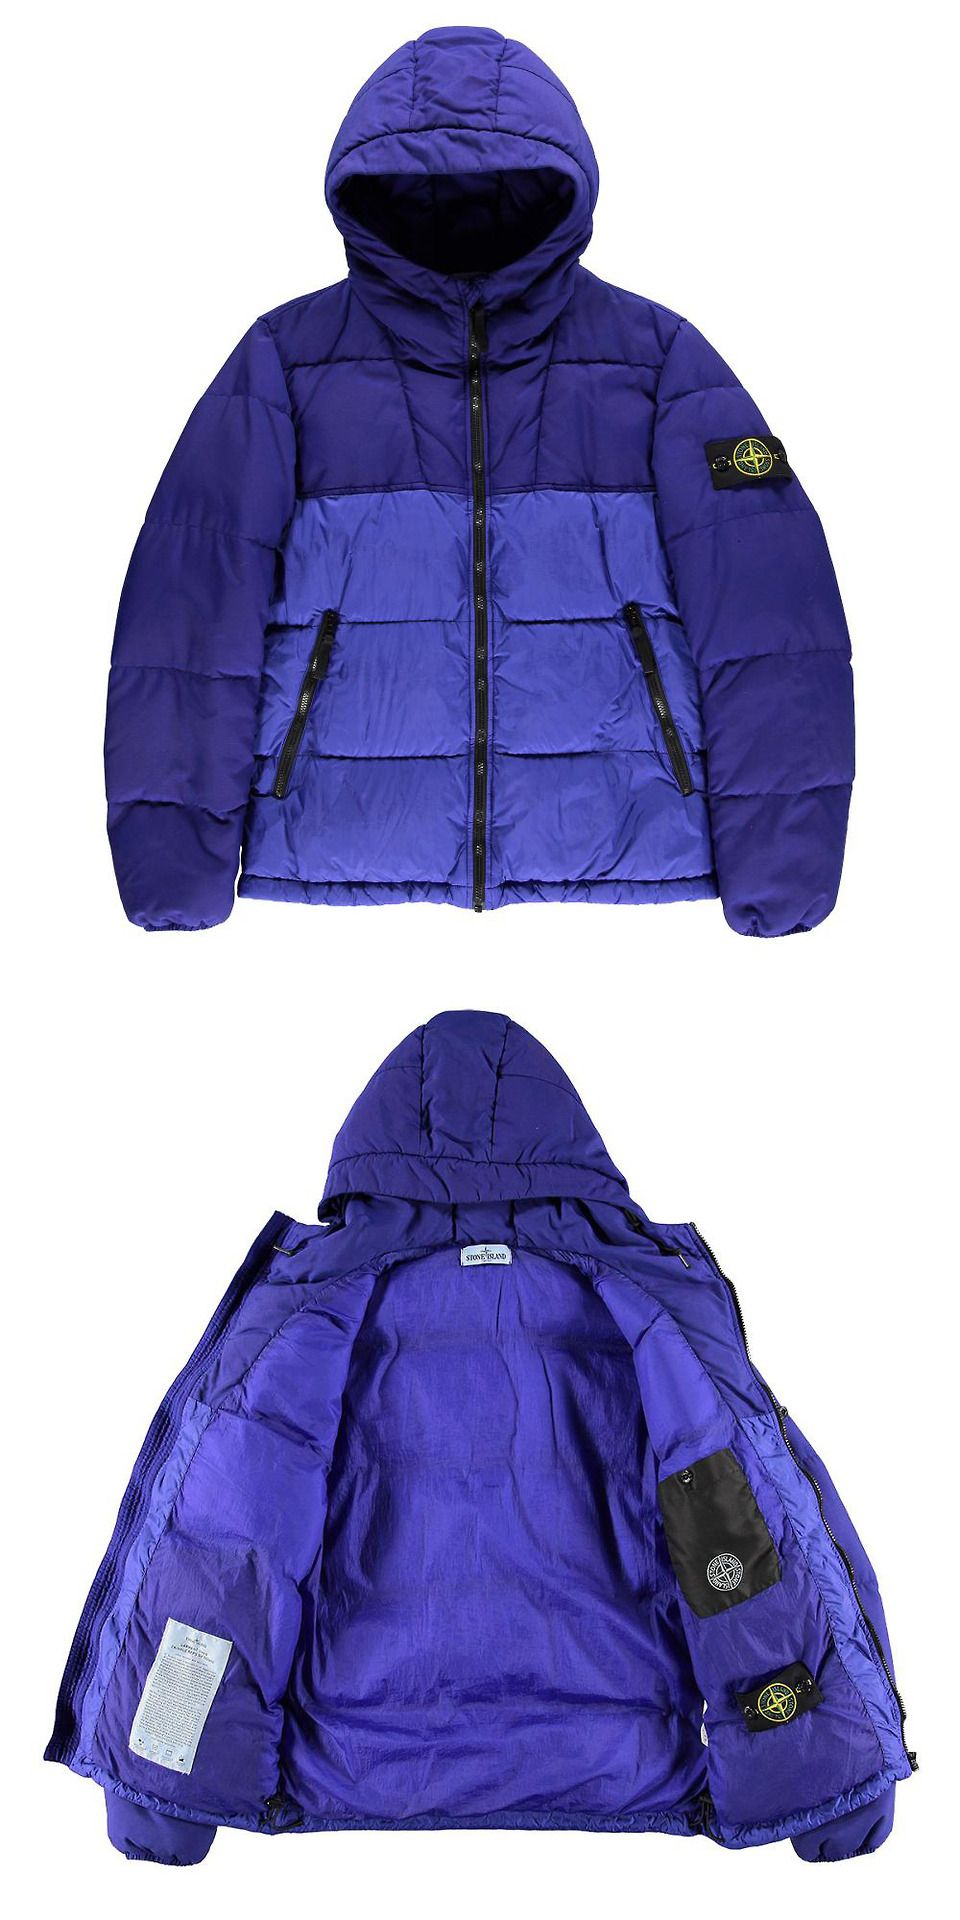 94a88b7e4 Crinkle Reps NY Down Puffa Jacket by Stone Island | Fashion in 2019 ...